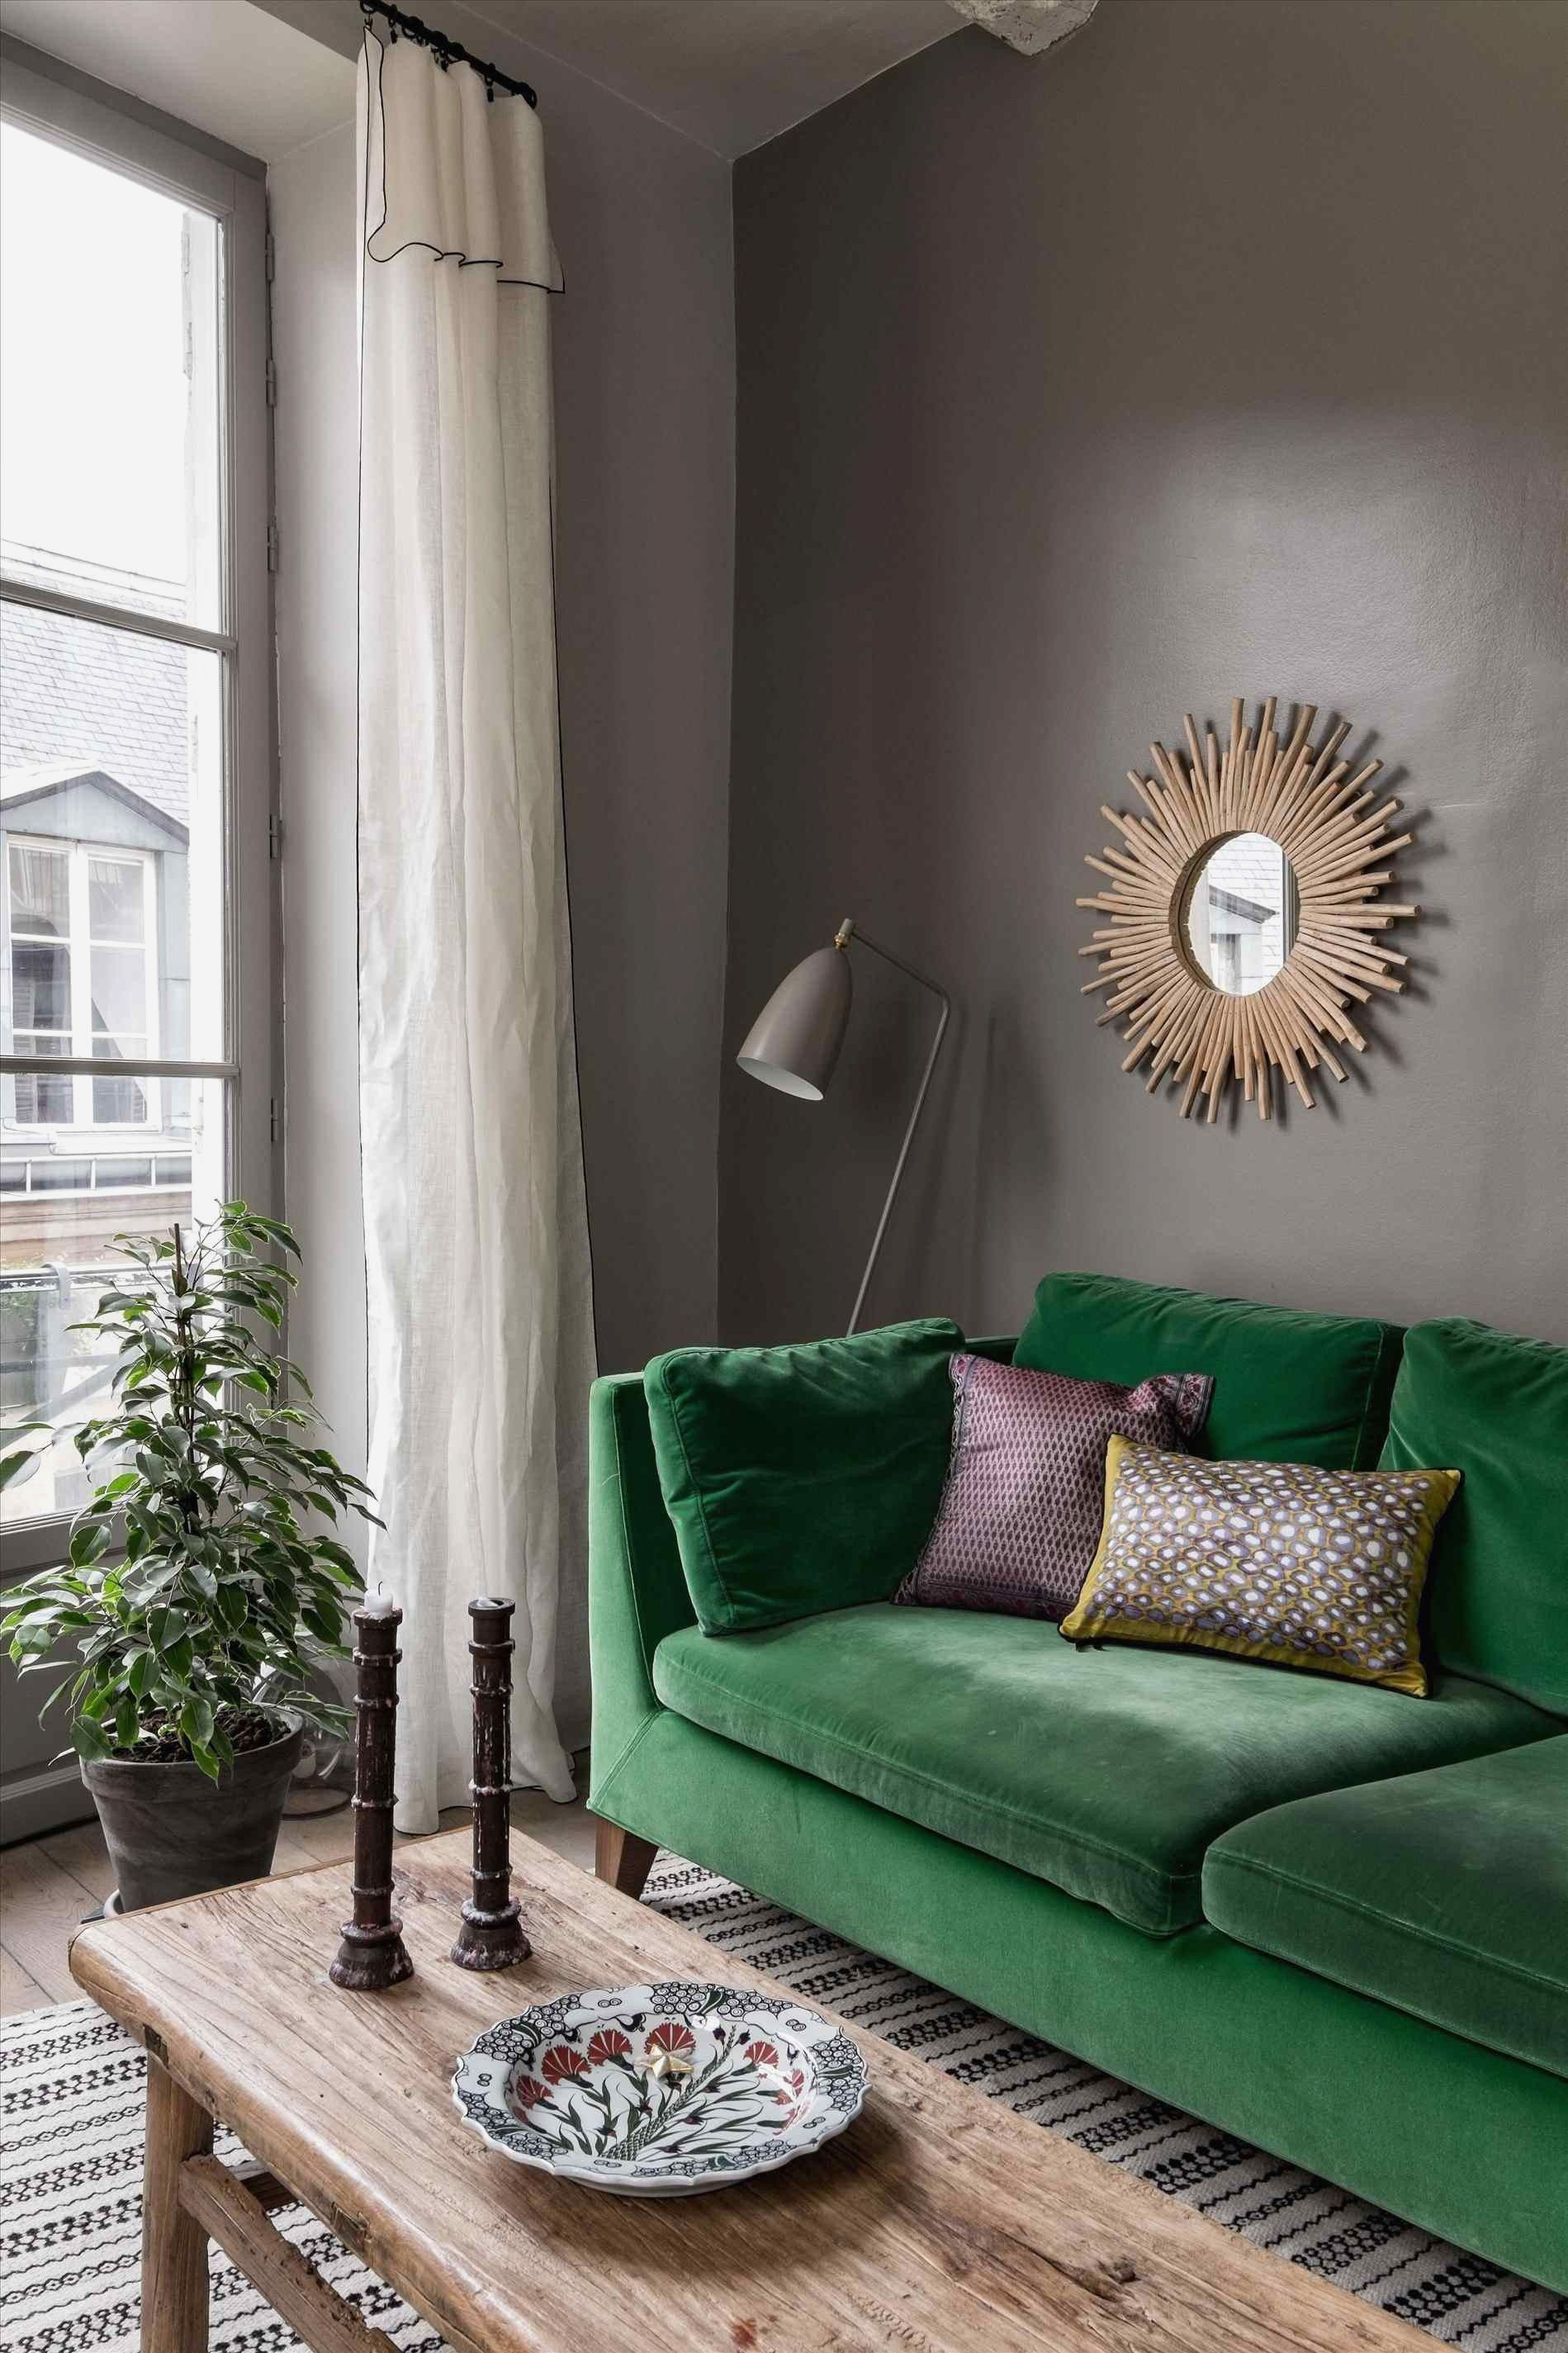 Luxury Dark Green Couch Living Room Best Good Home Design Classy Simple On Decorating Idea Cover What Col Living Room Green Room Interior Apartment Living Room